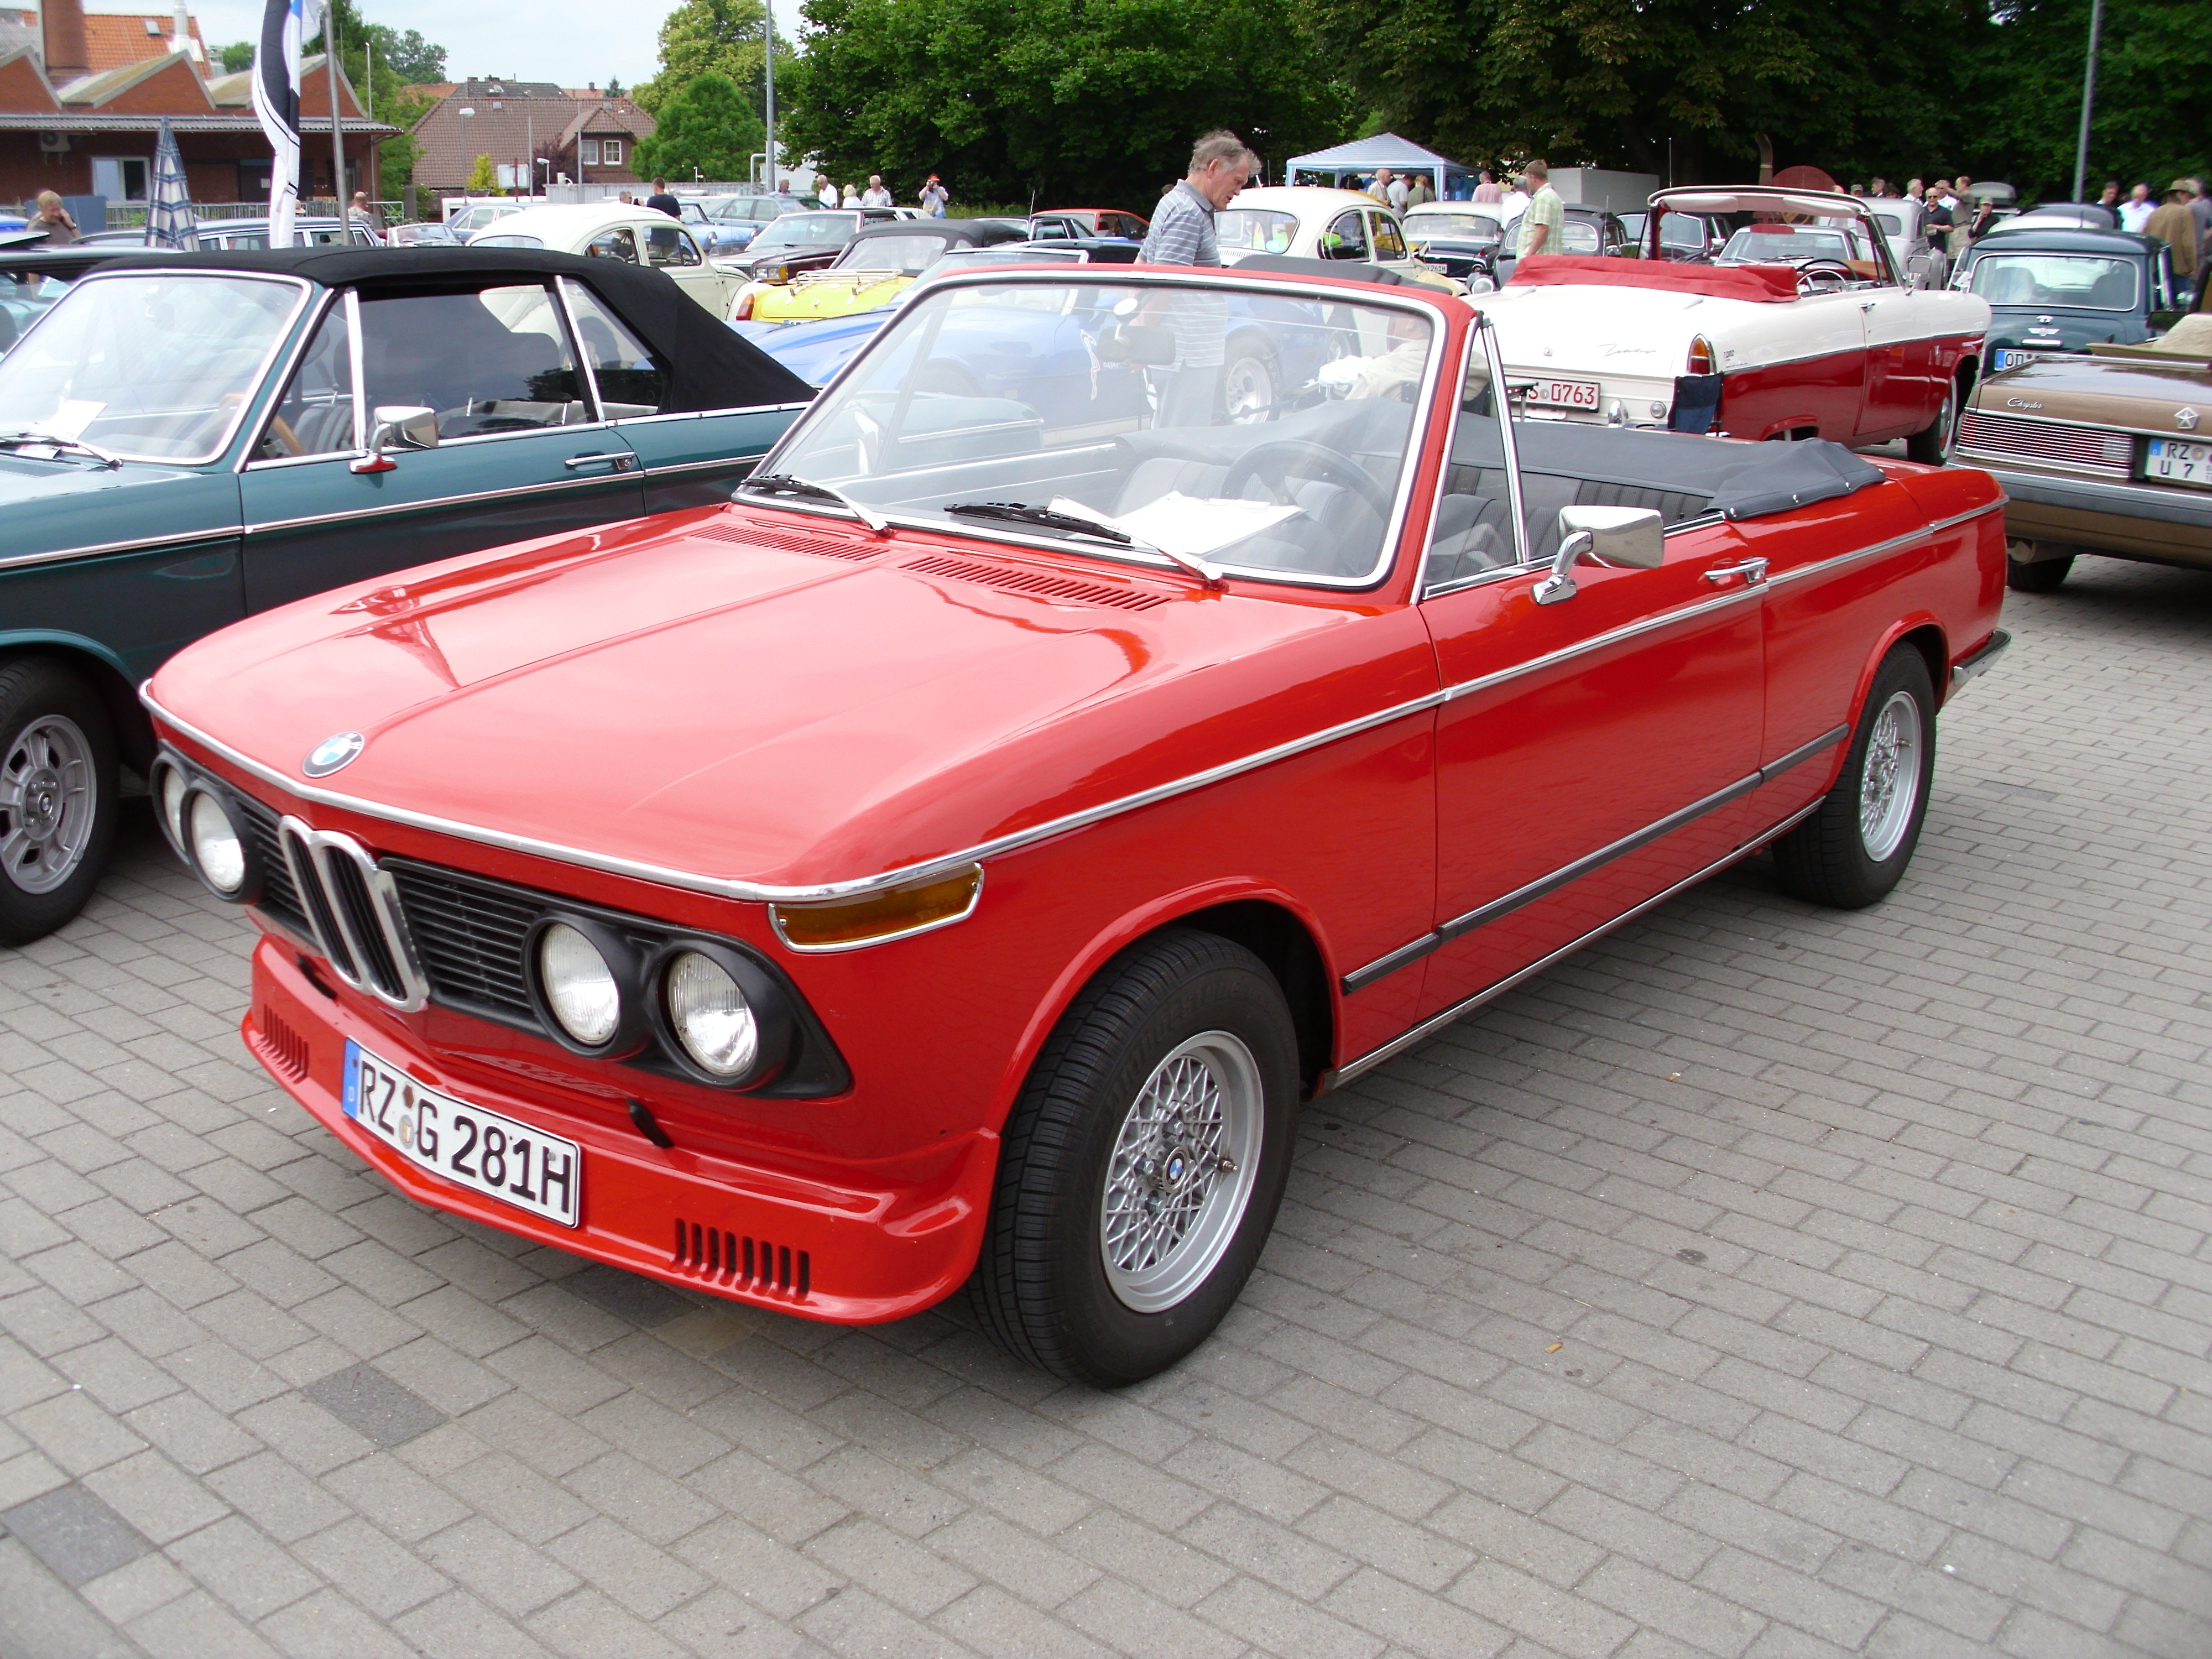 BMW 1600-2 Cabriolet (Baur) 1970 -2- | Flickr - Photo Sharing!